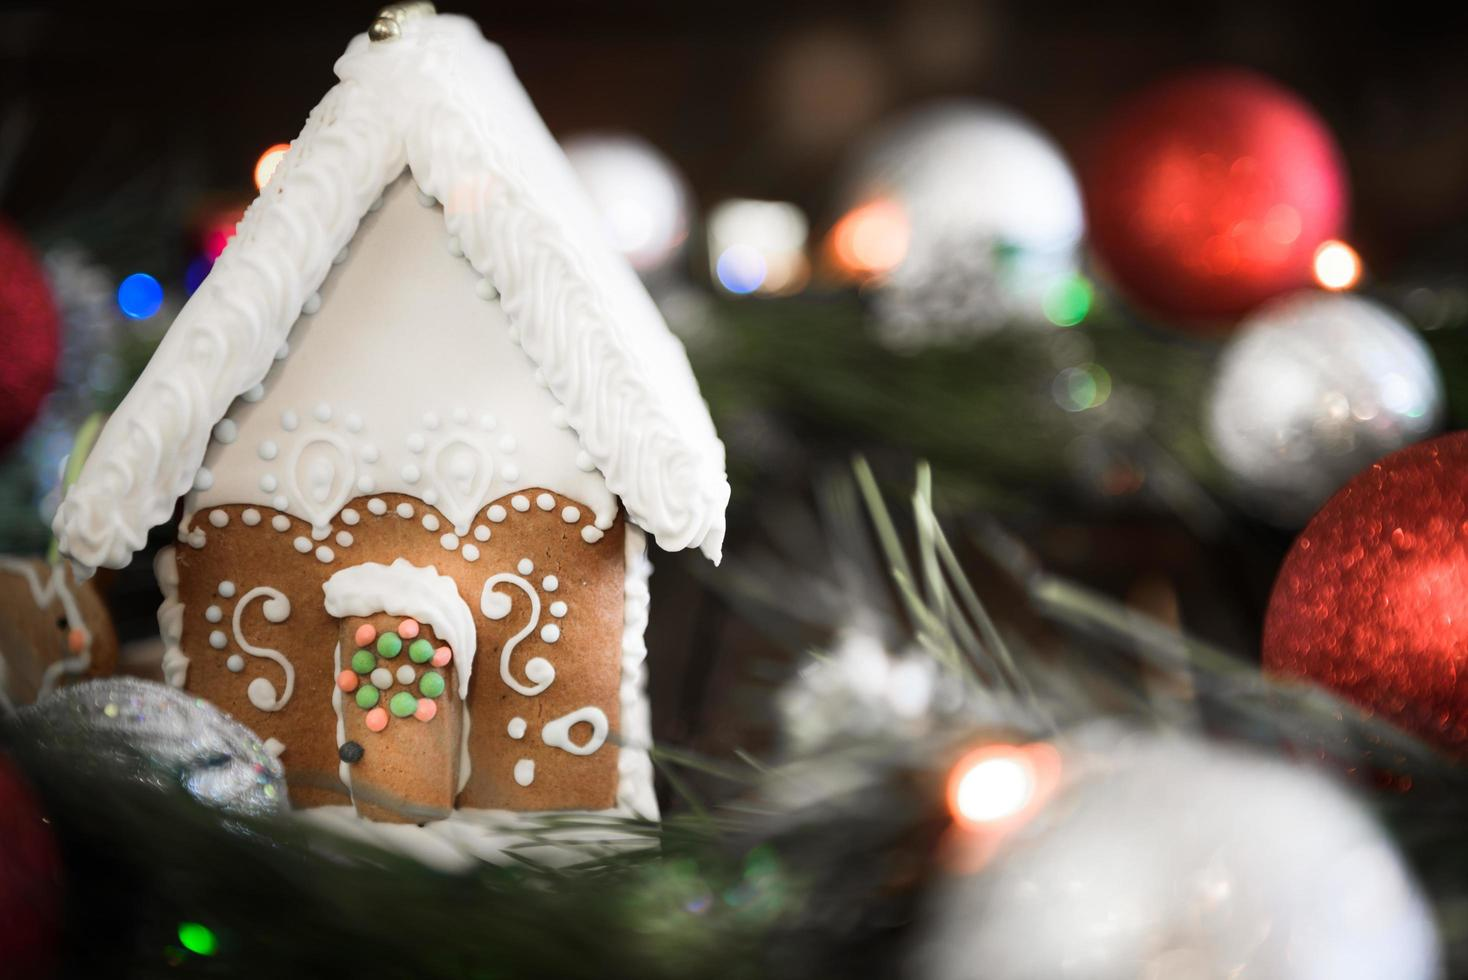 Gingerbread house in the white glaze on the background of the Christmas decorations photo